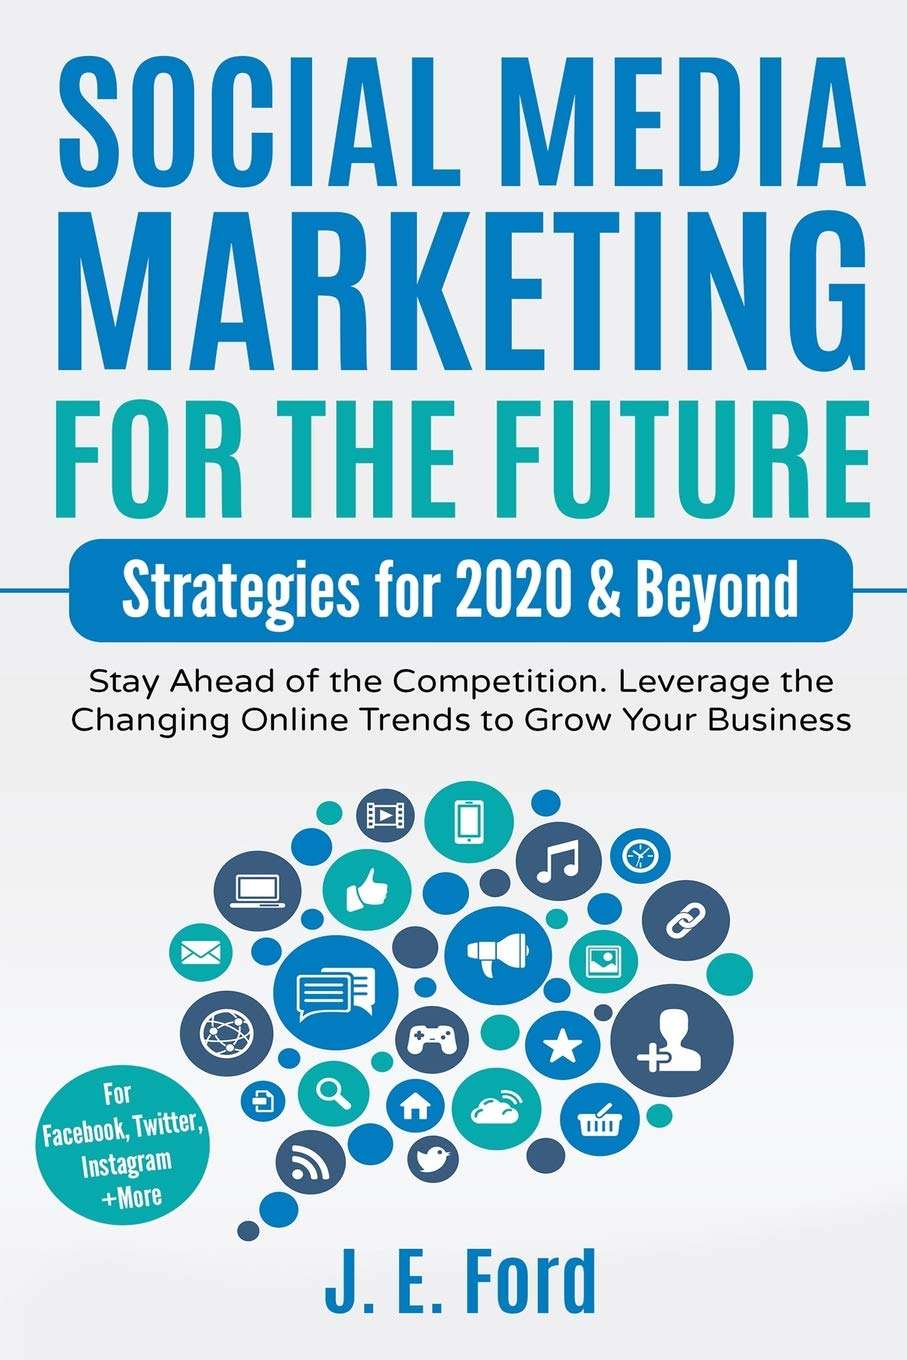 Social Media Marketing Trends 2020.Social Media Marketing For The Future Strategies For 2020